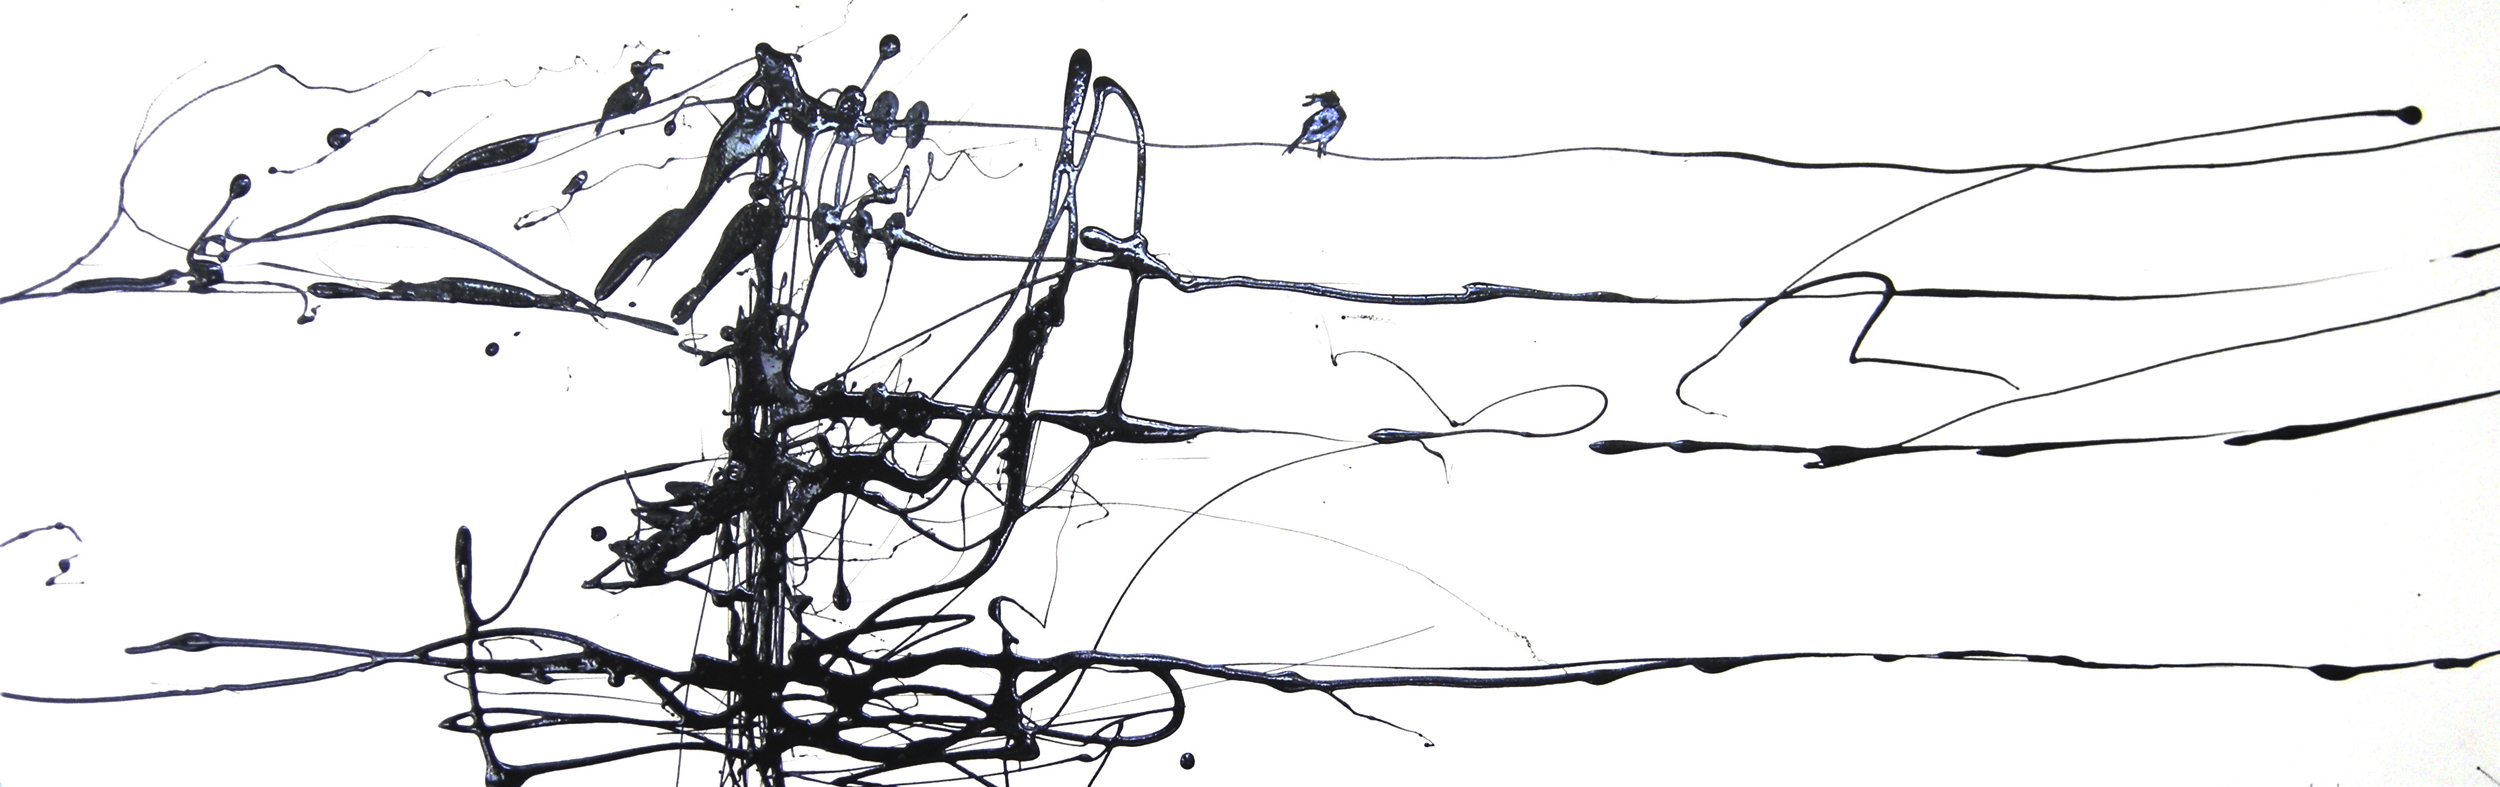 BIRDS ON A WIRE #2  Industrial Paint on Paper | 87 x 28.5 cm